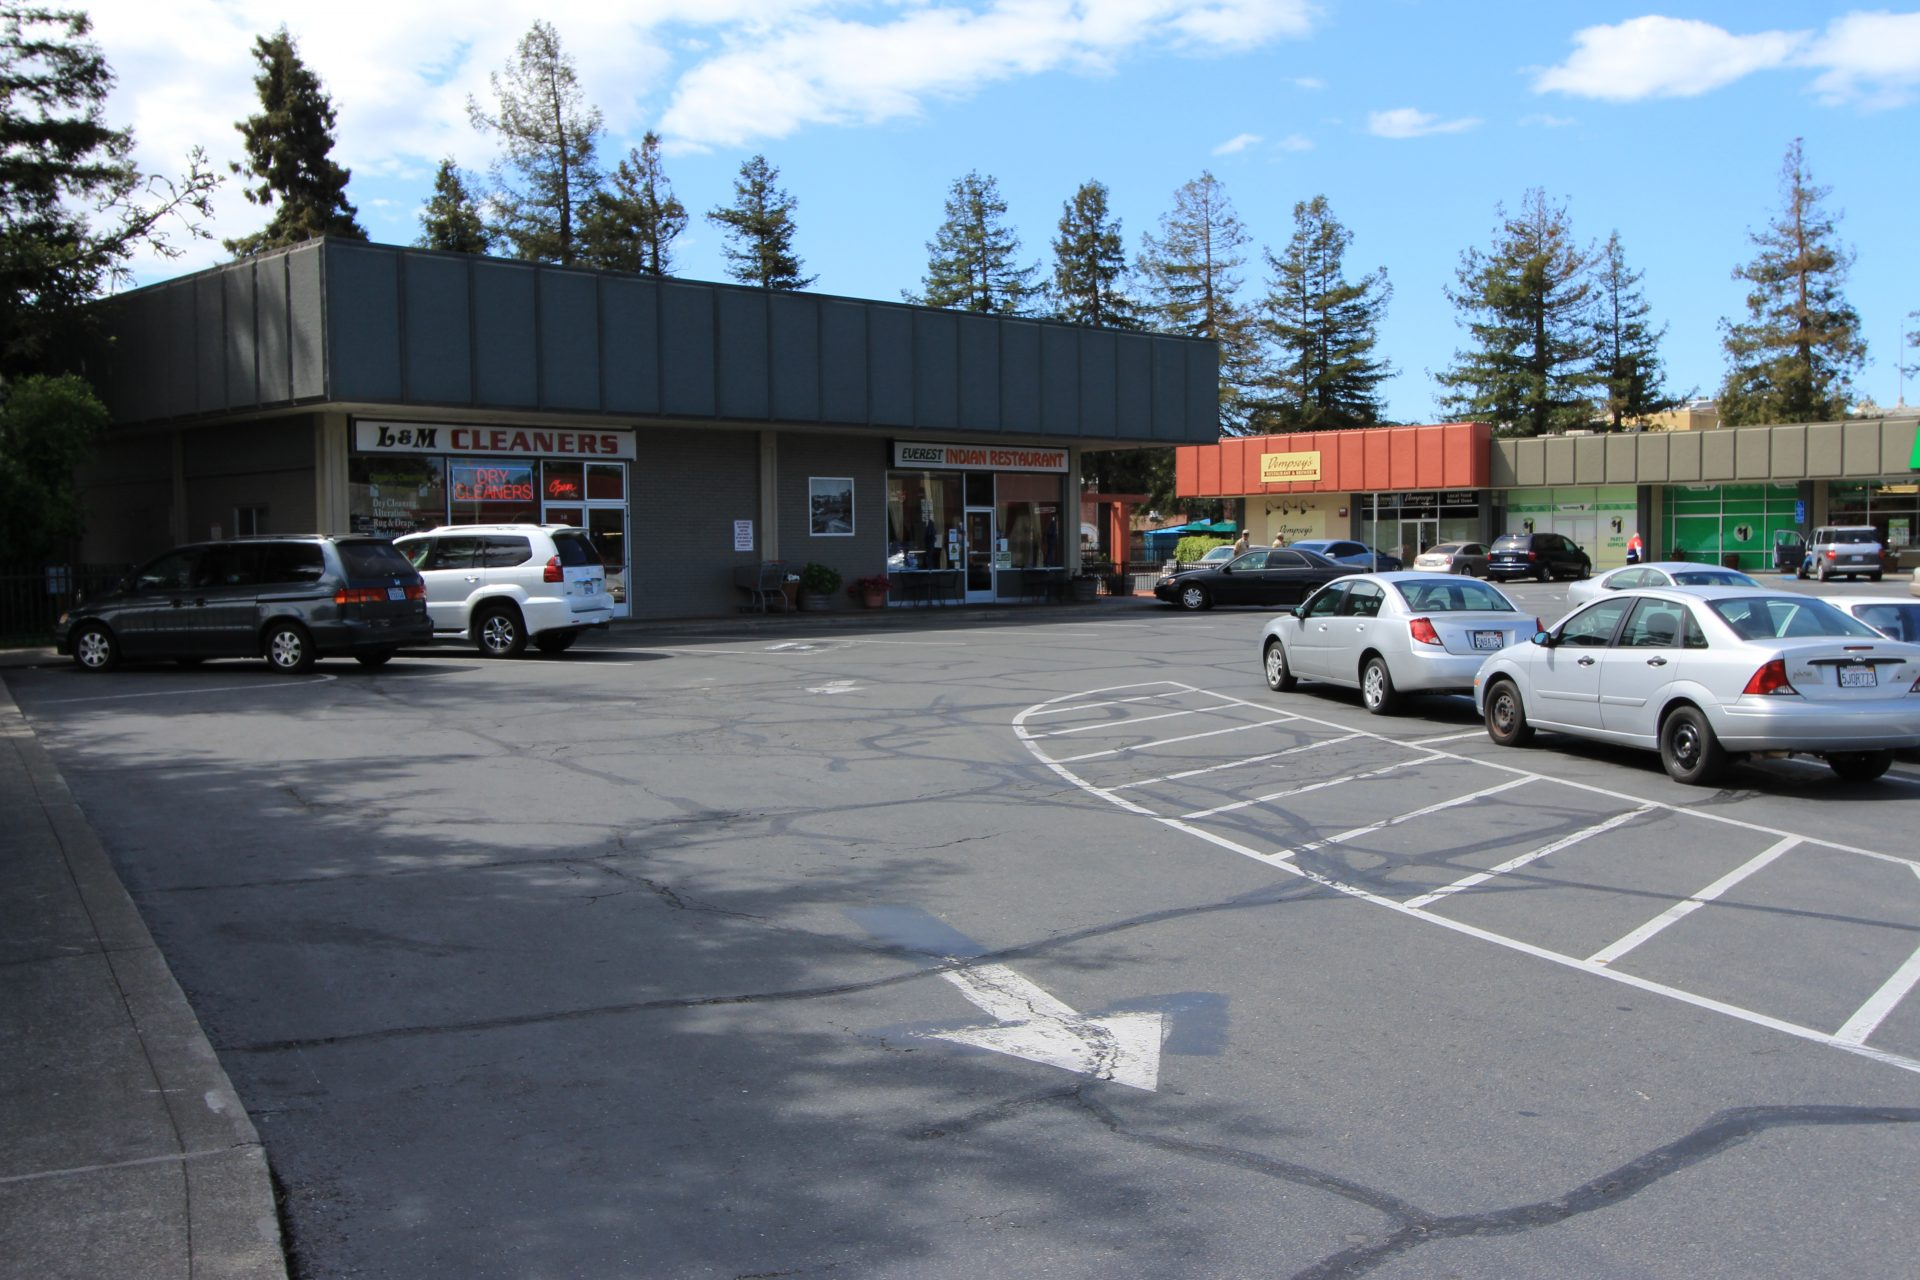 Parking lot in strip mall